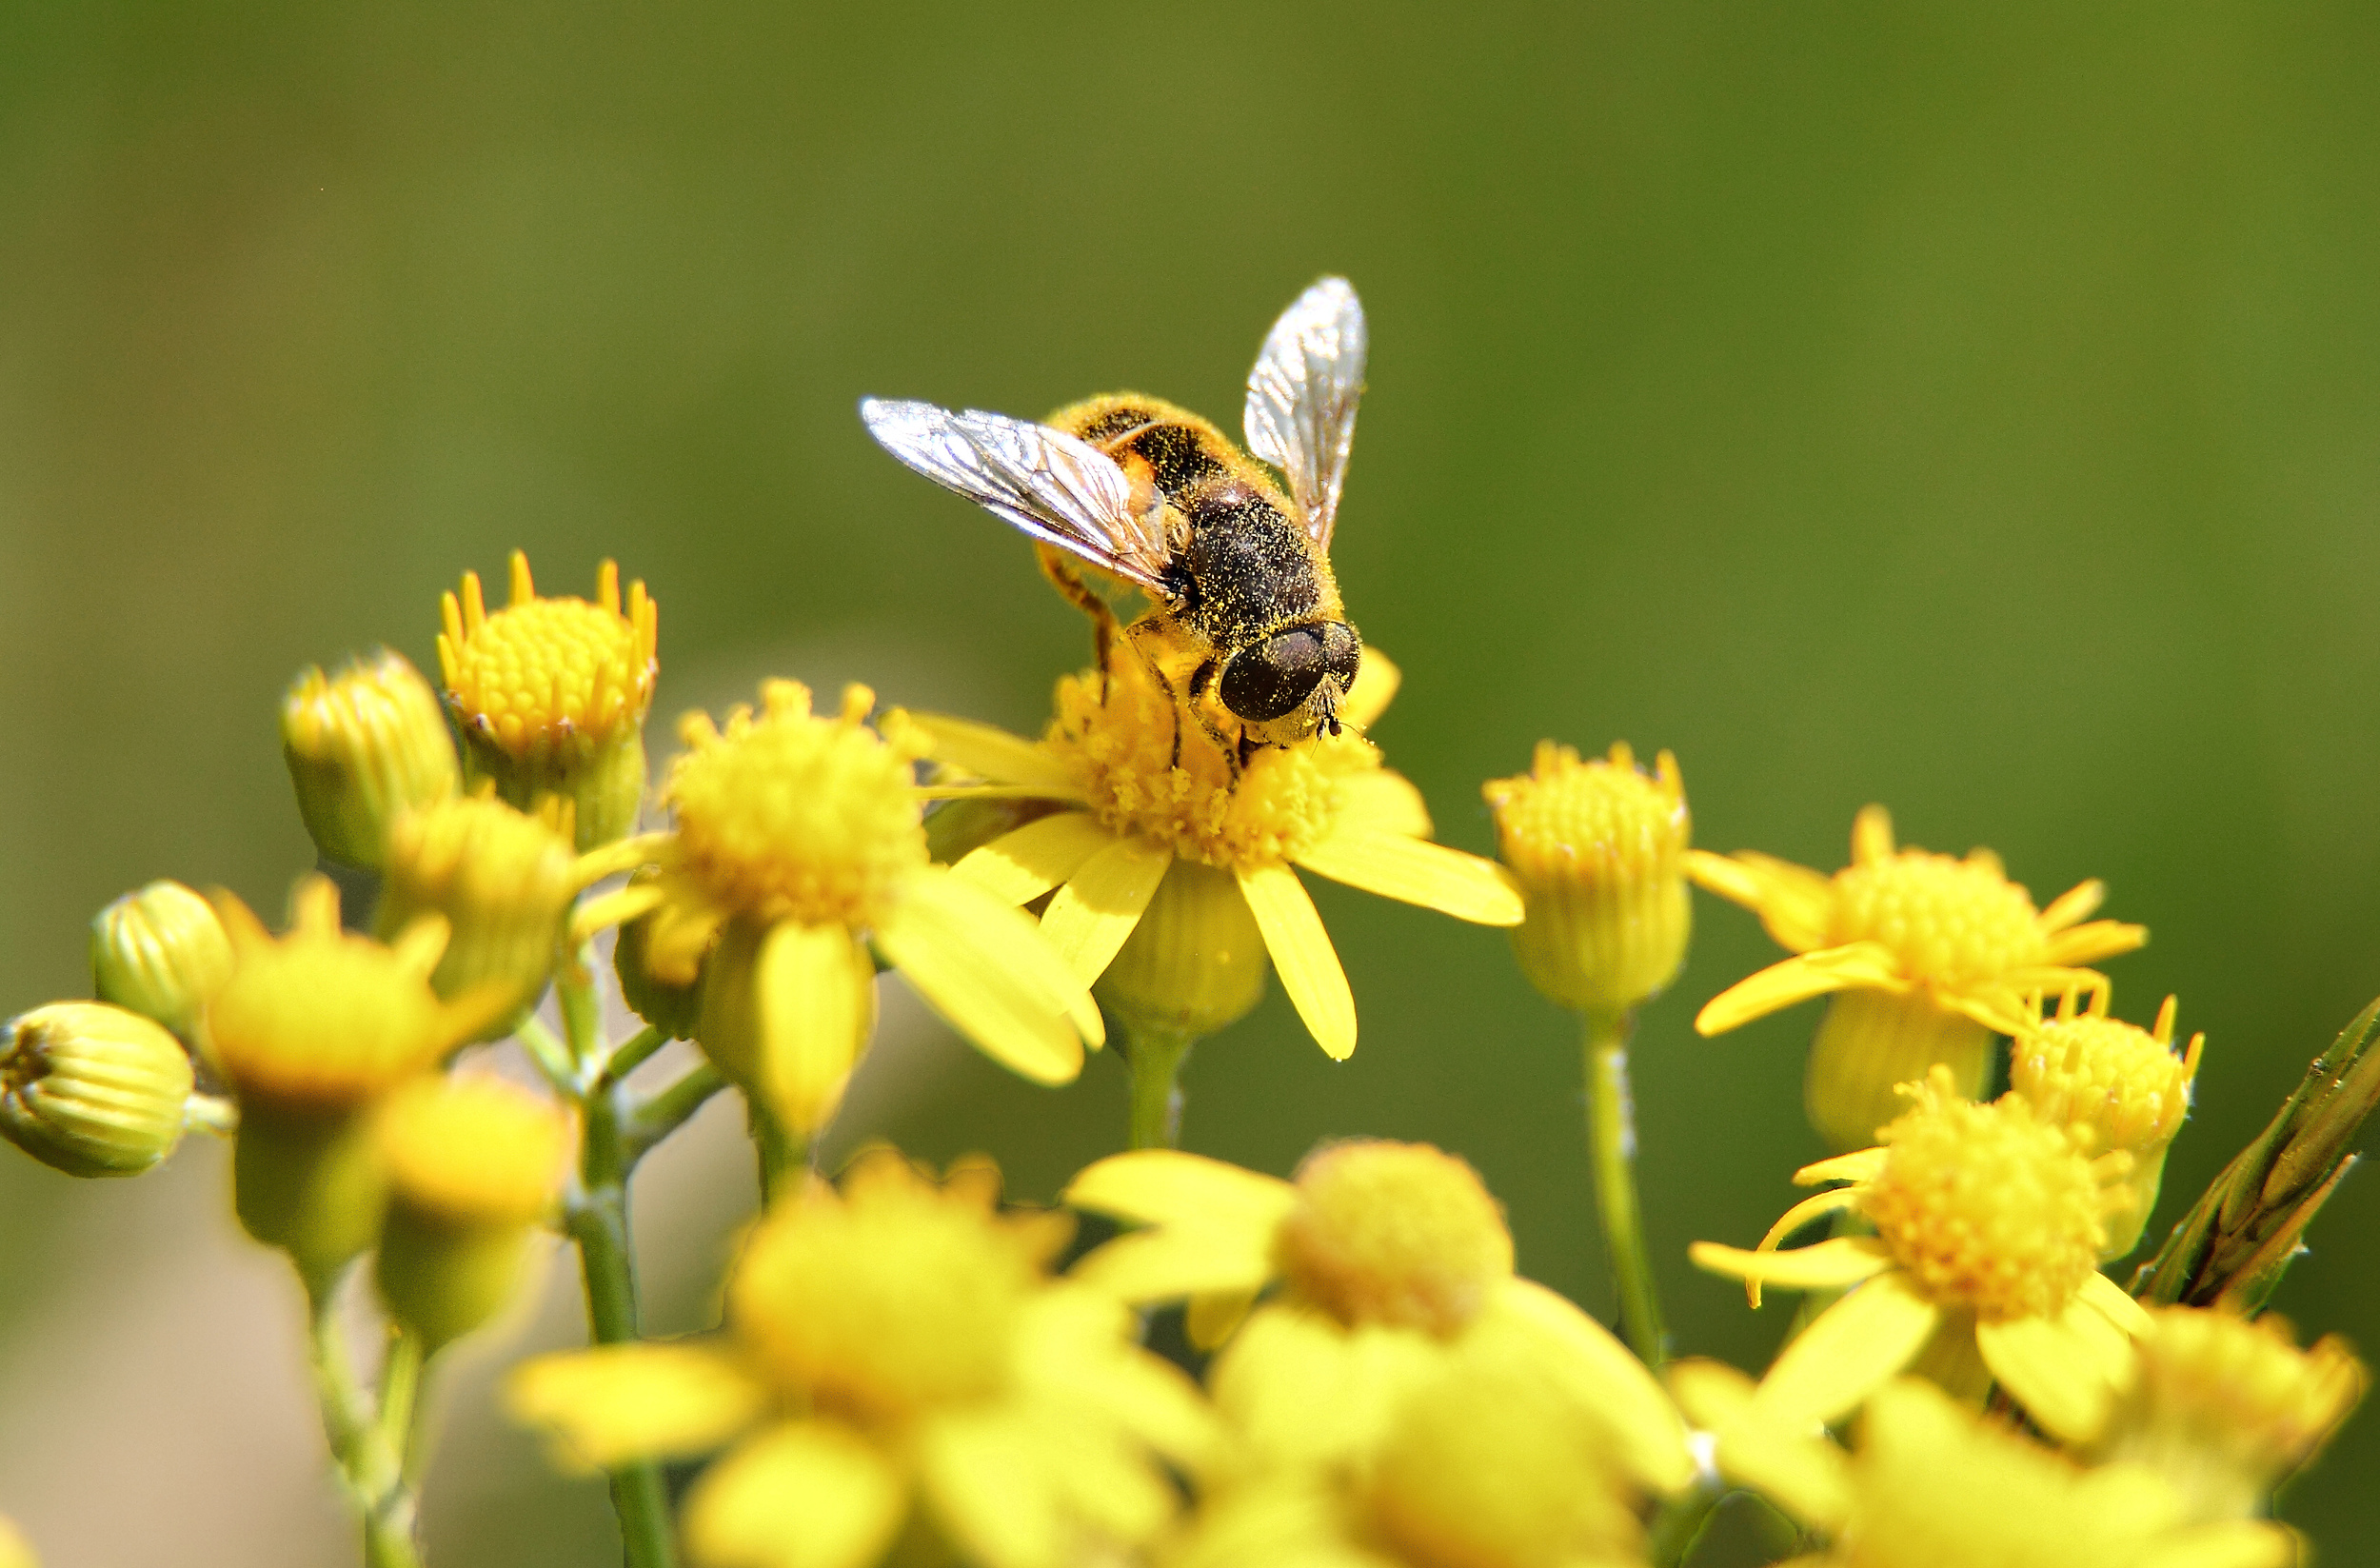 Bee-gathering_pollen_yellow-flower-macro.jpg